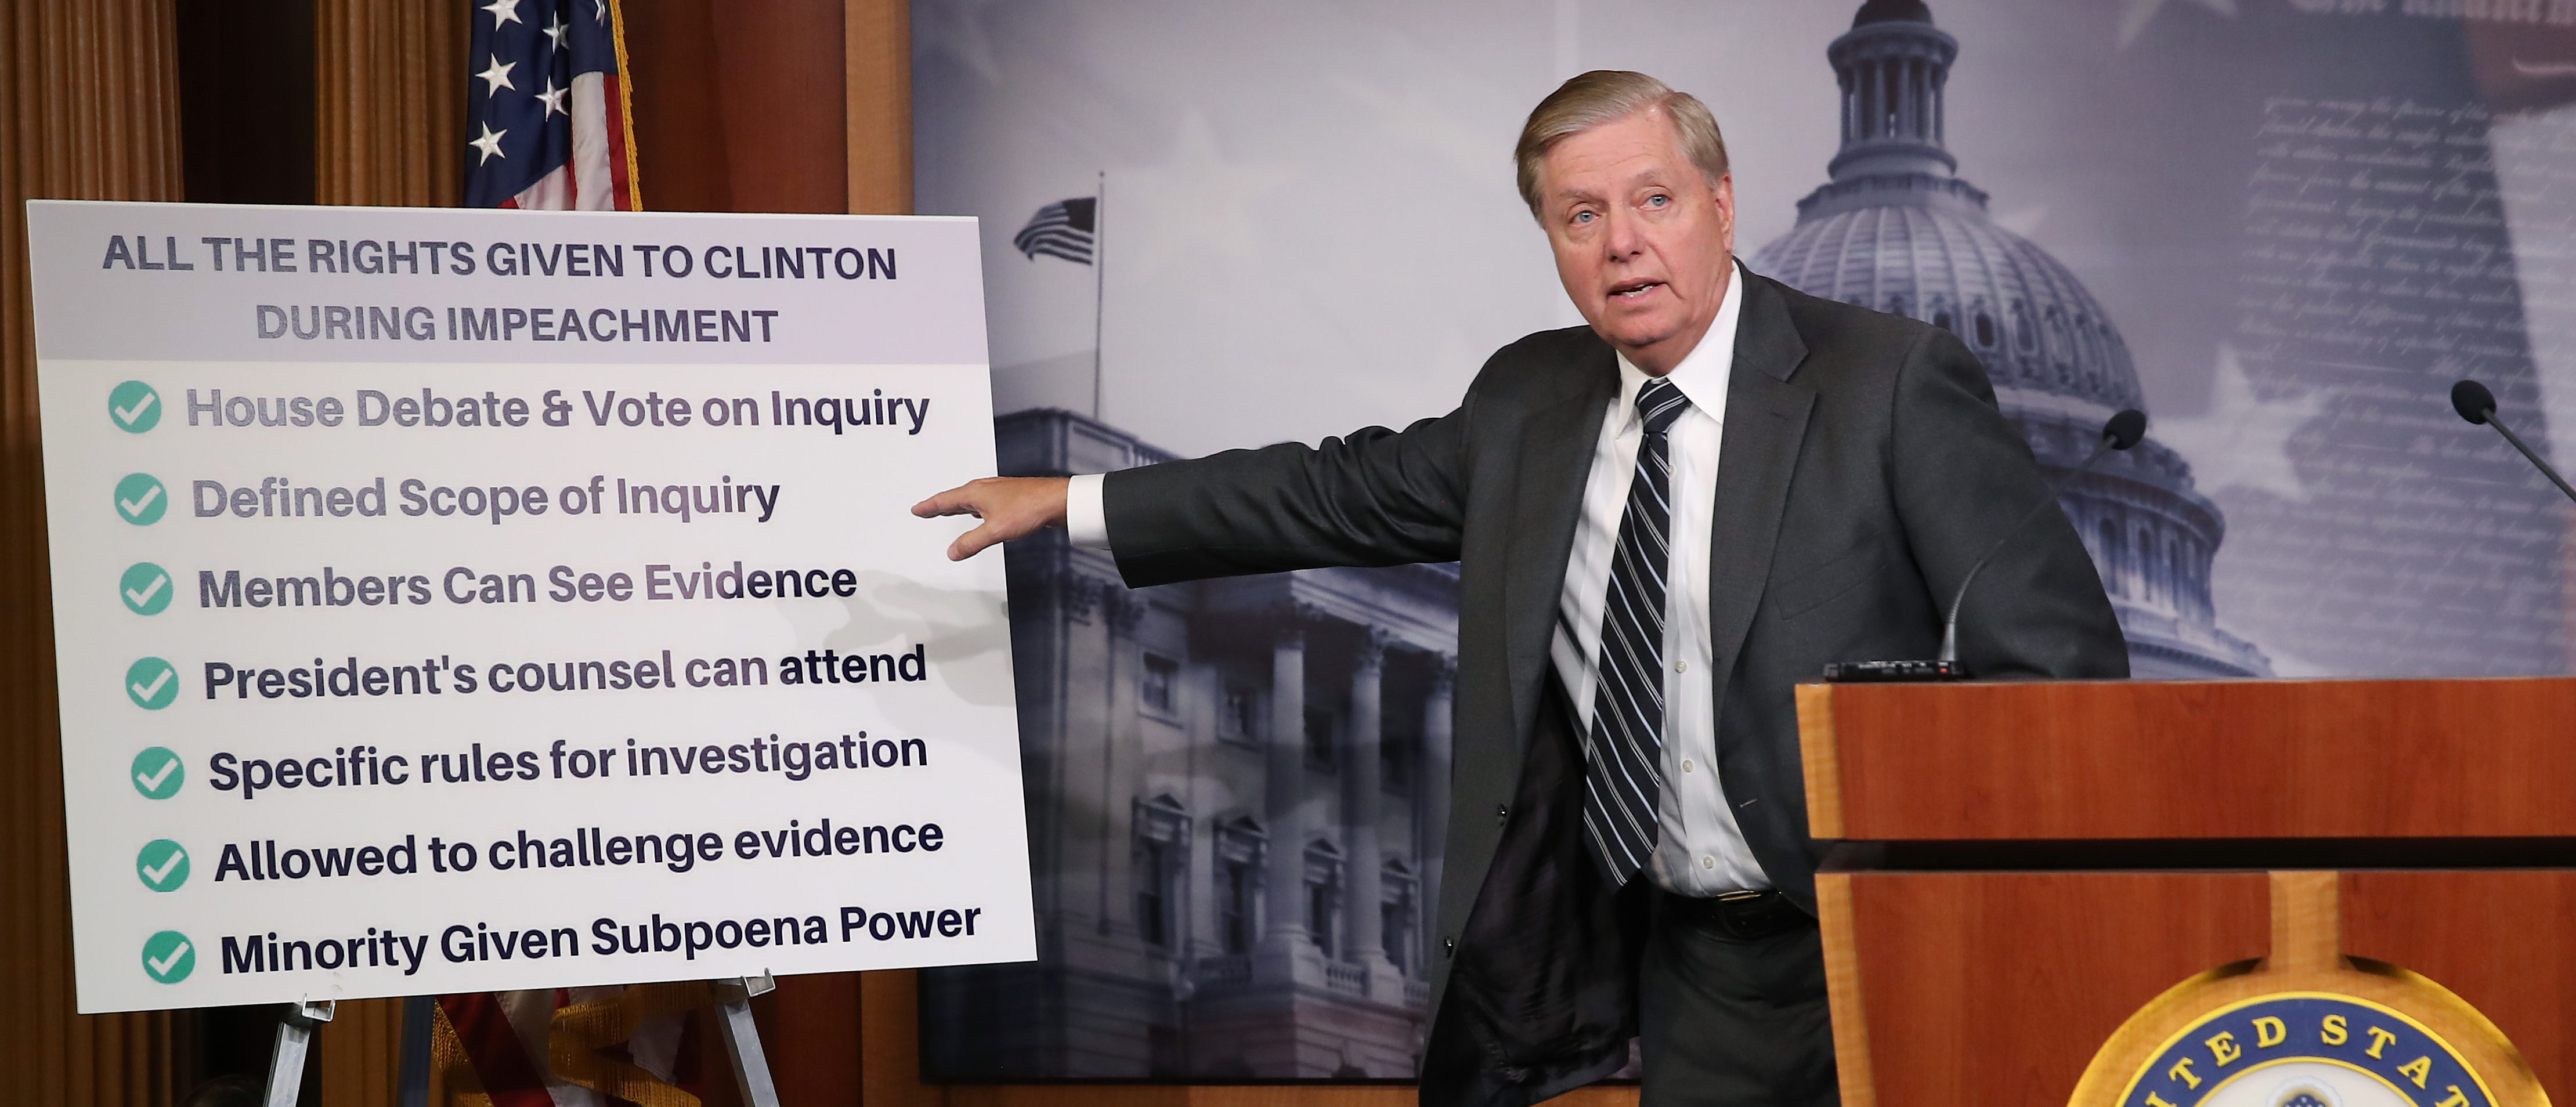 WASHINGTON, DC - OCTOBER 24: Senate Judiciary Committee Chairman Lindsey Graham (R-SC), talks about the Clinton impeachment while introducing a resolution condemning House Impeachment inquiry against President Donald Trump, at the U.S. Capitol on October 24, 2019 in Washington, DC. (Photo by Mark Wilson/Getty Images)